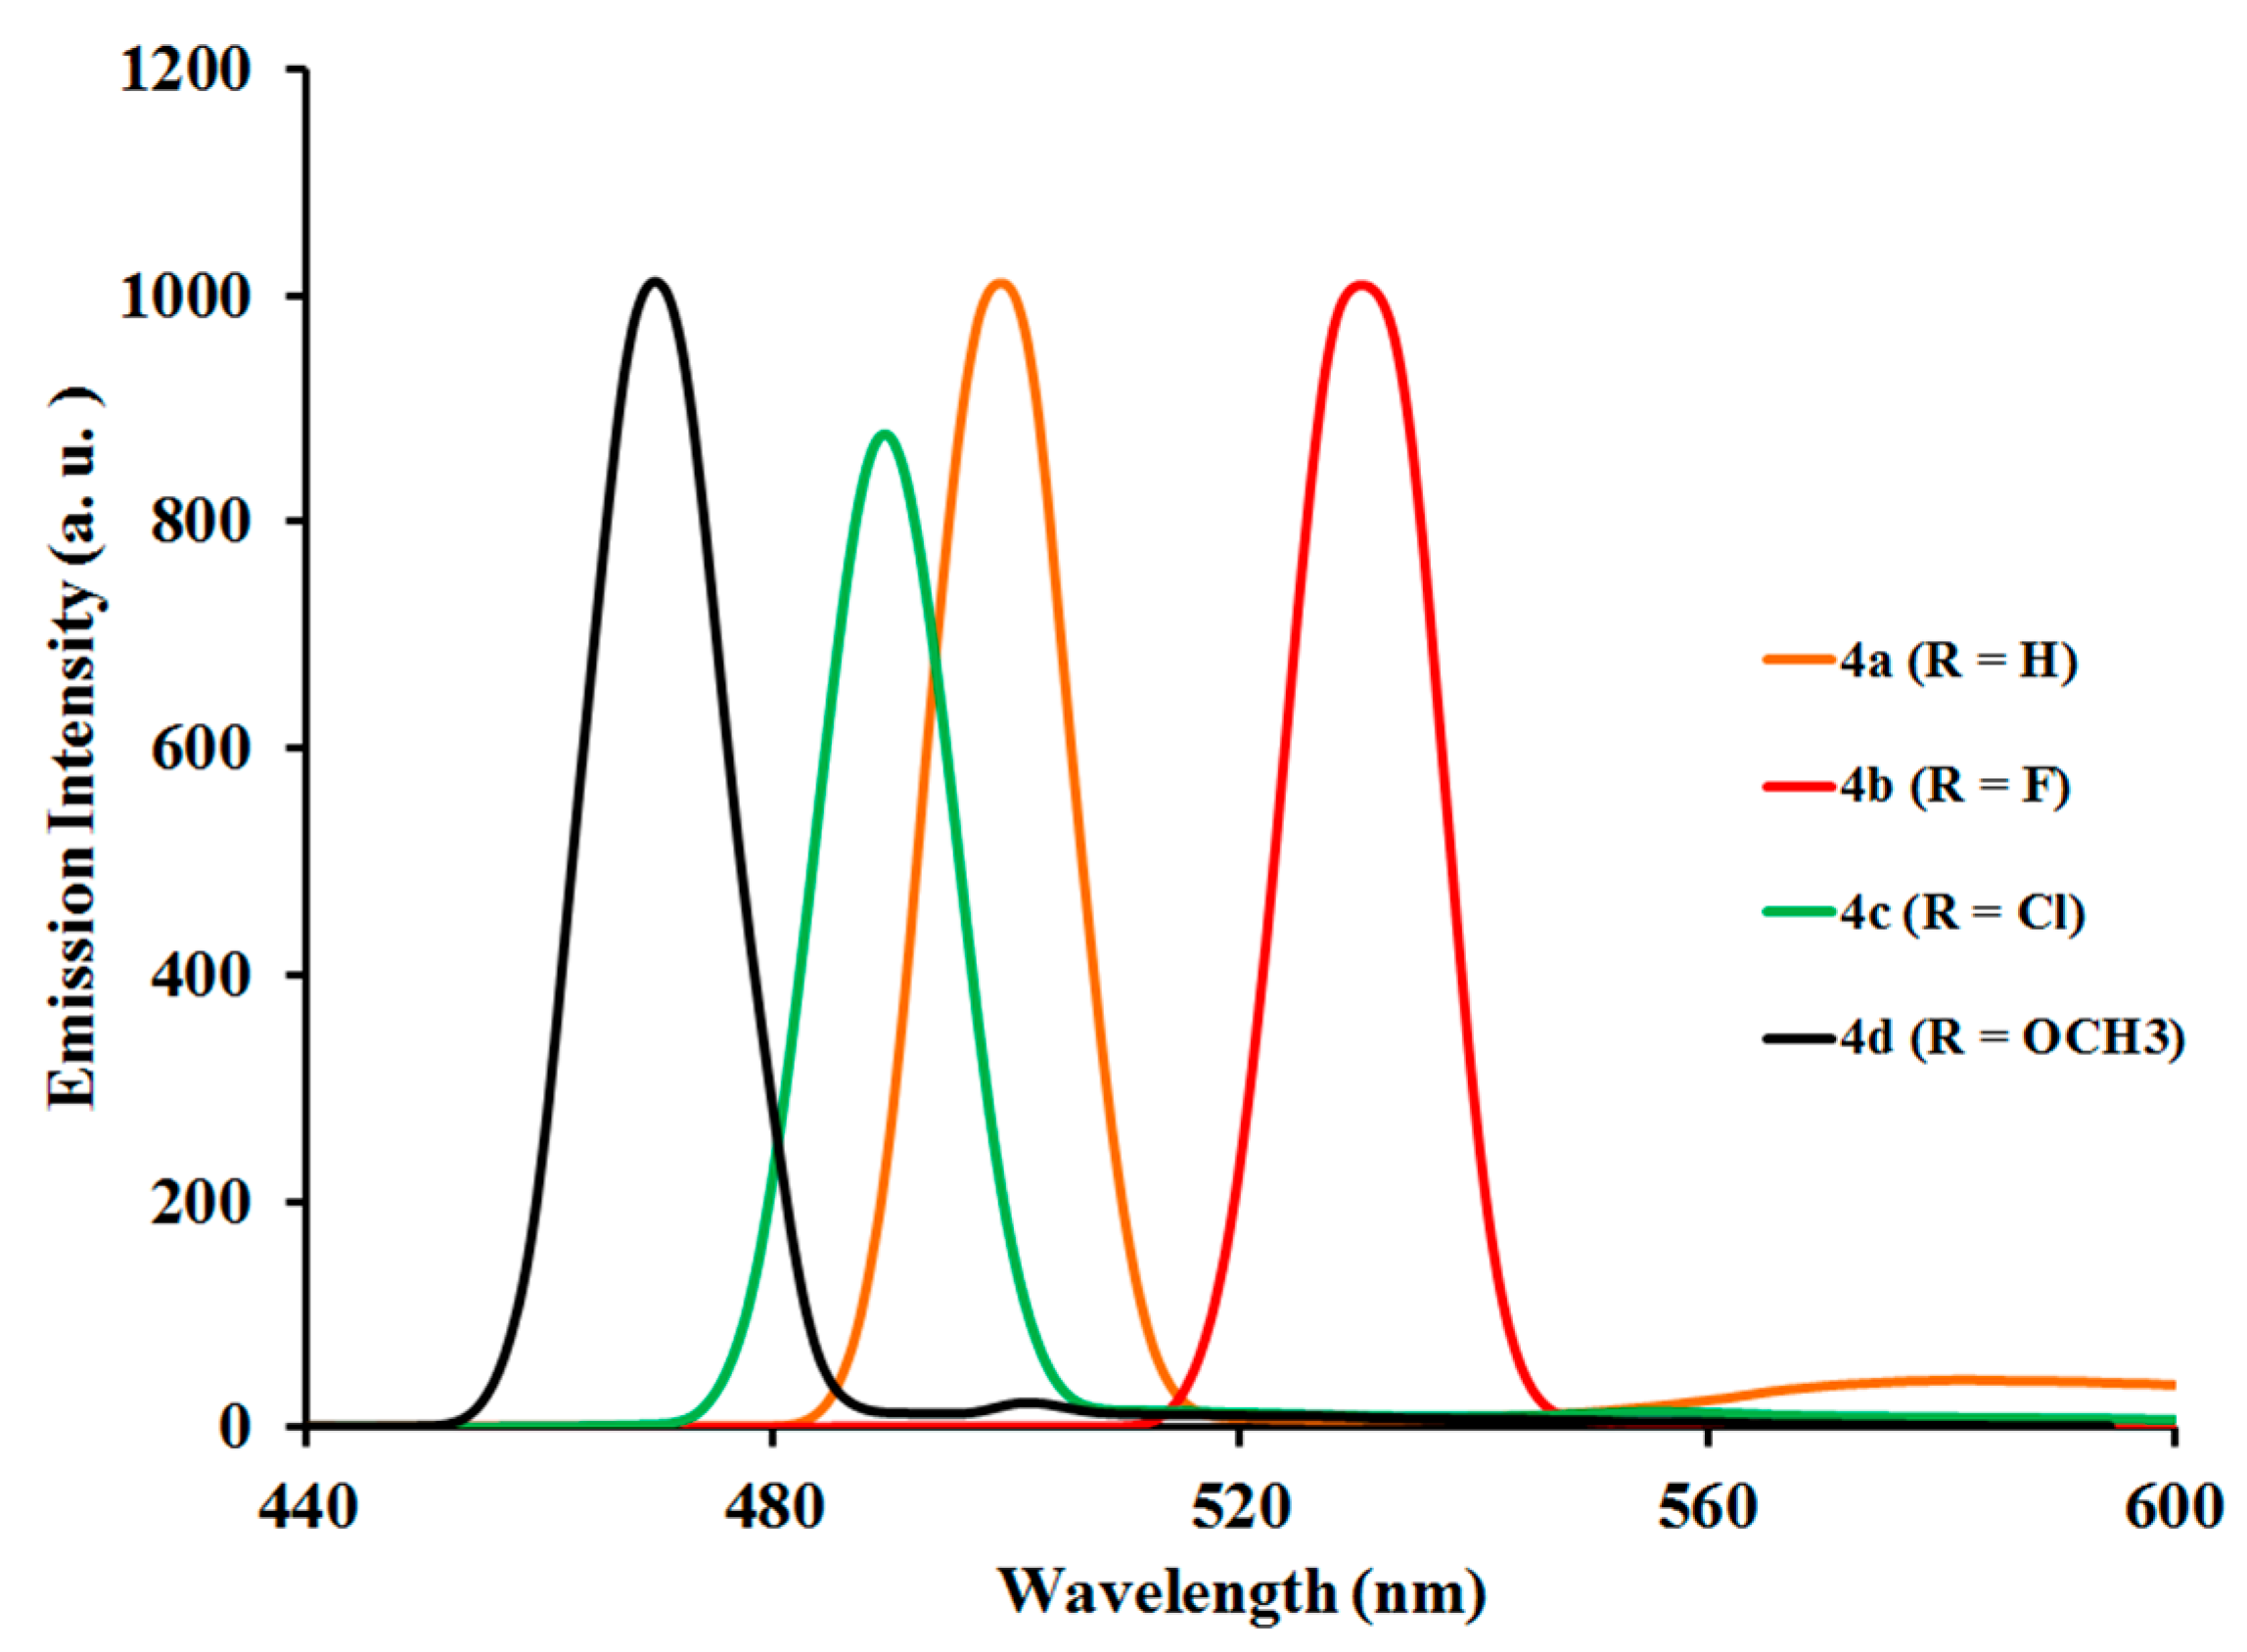 Materials Free Full Text Spectroscopic Electrochemical And Dft Marshall Electronics Optical Division 480 Line High Resolution Color 10 01061 G007